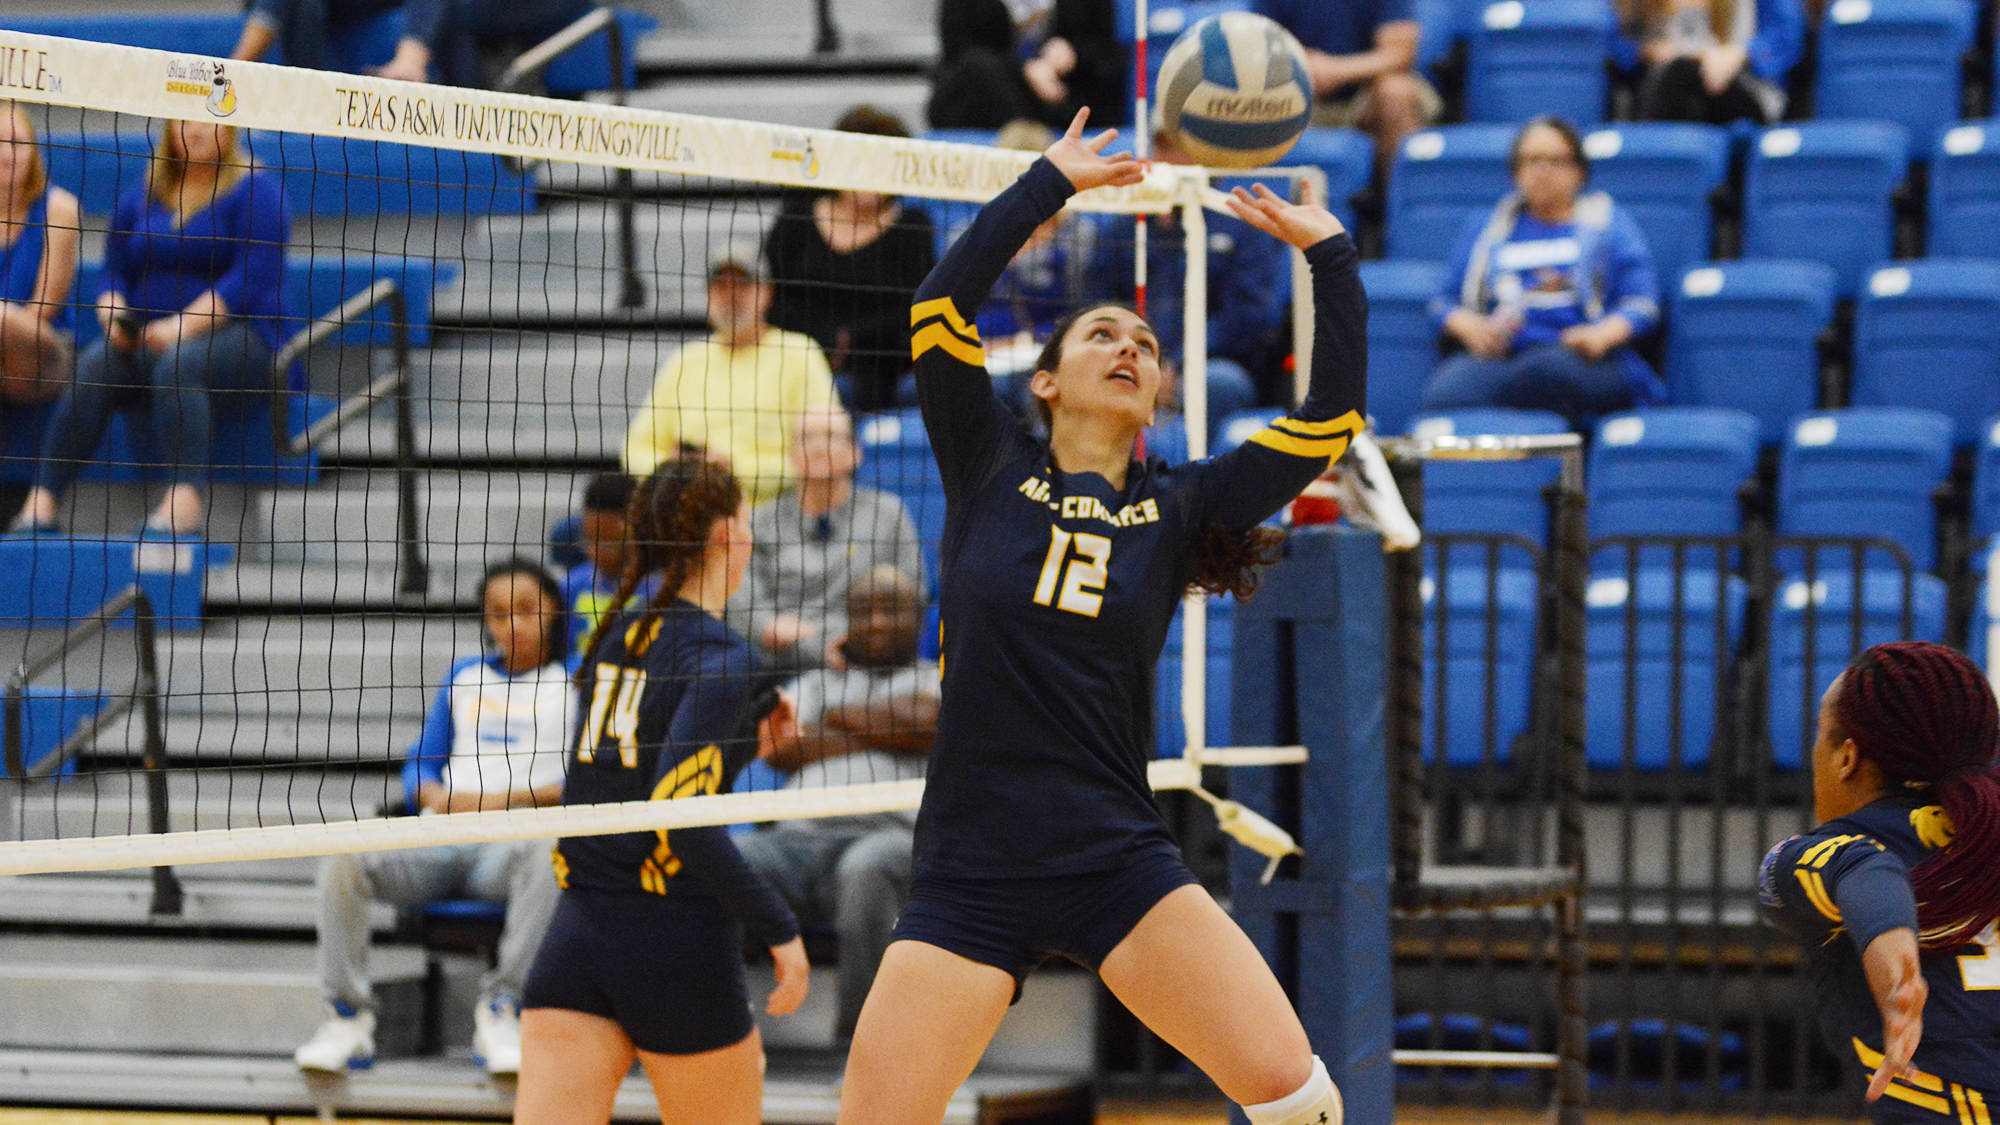 Rylie Fuentes Named Lsc Setter Of The Week Texas A M University Commerce Athletics